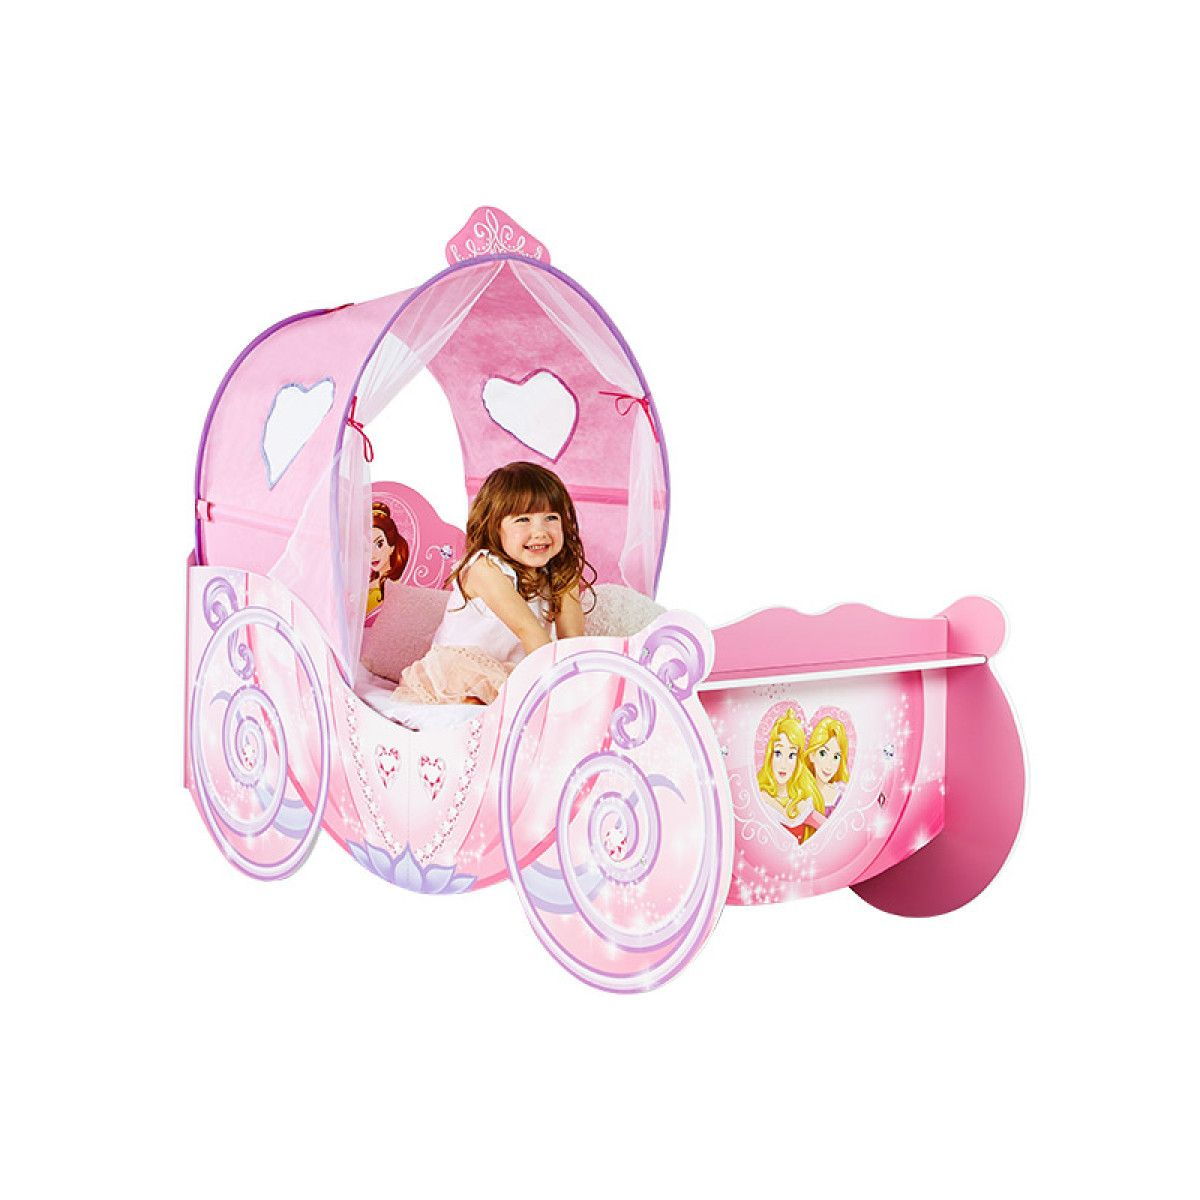 Disney Princess Carriage Feature Toddler Bed Plus Fully Sprung